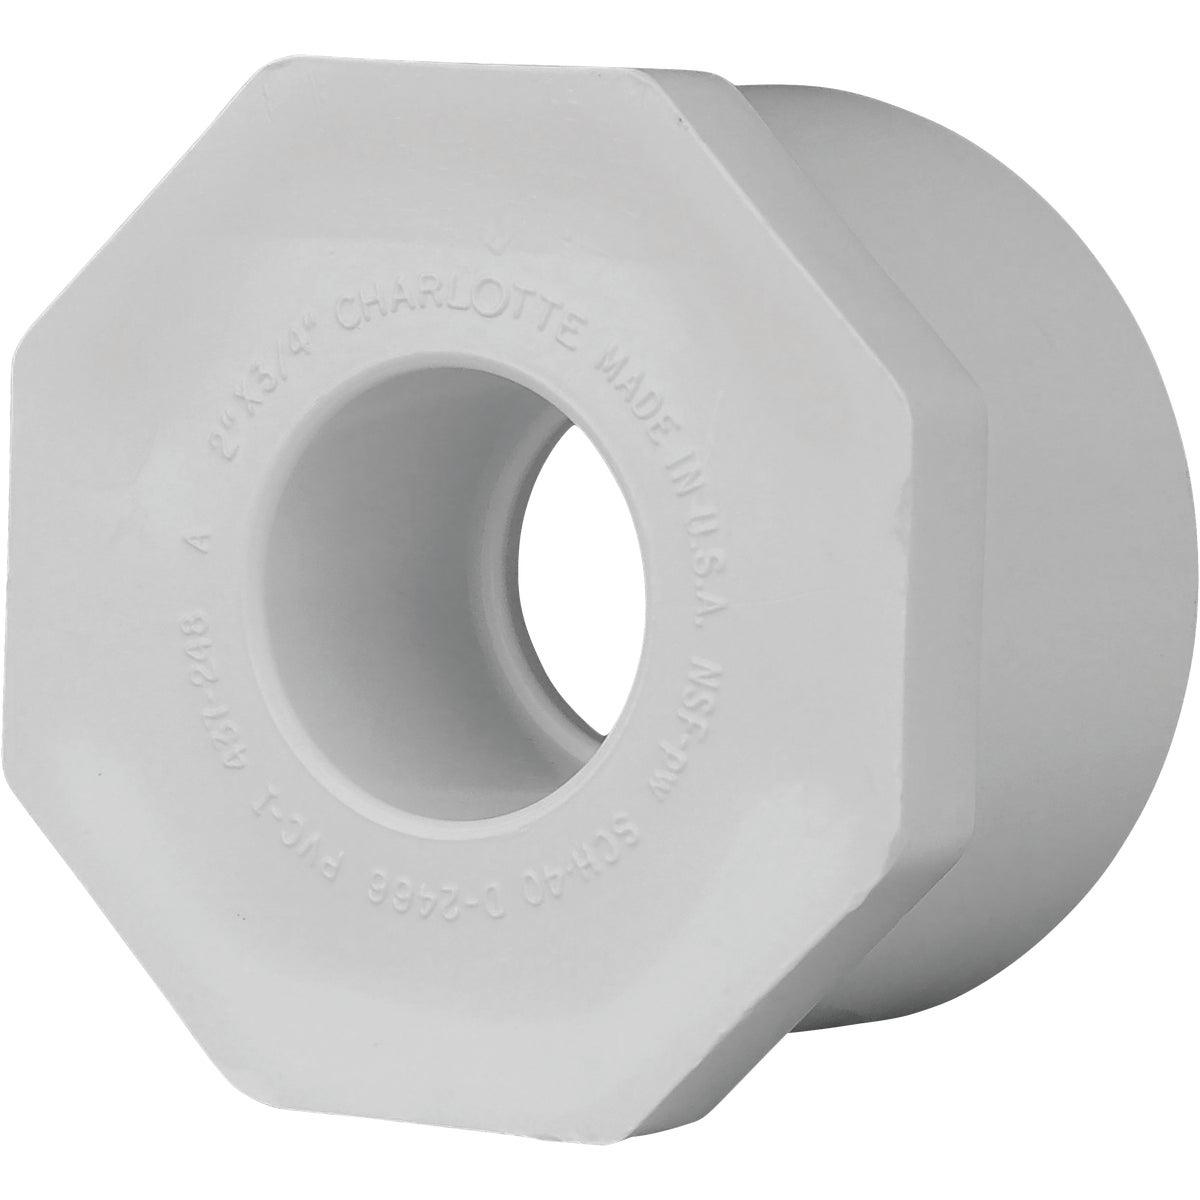 2X3/4 PVC SPXS BUSHING - 30227 by Genova Inc